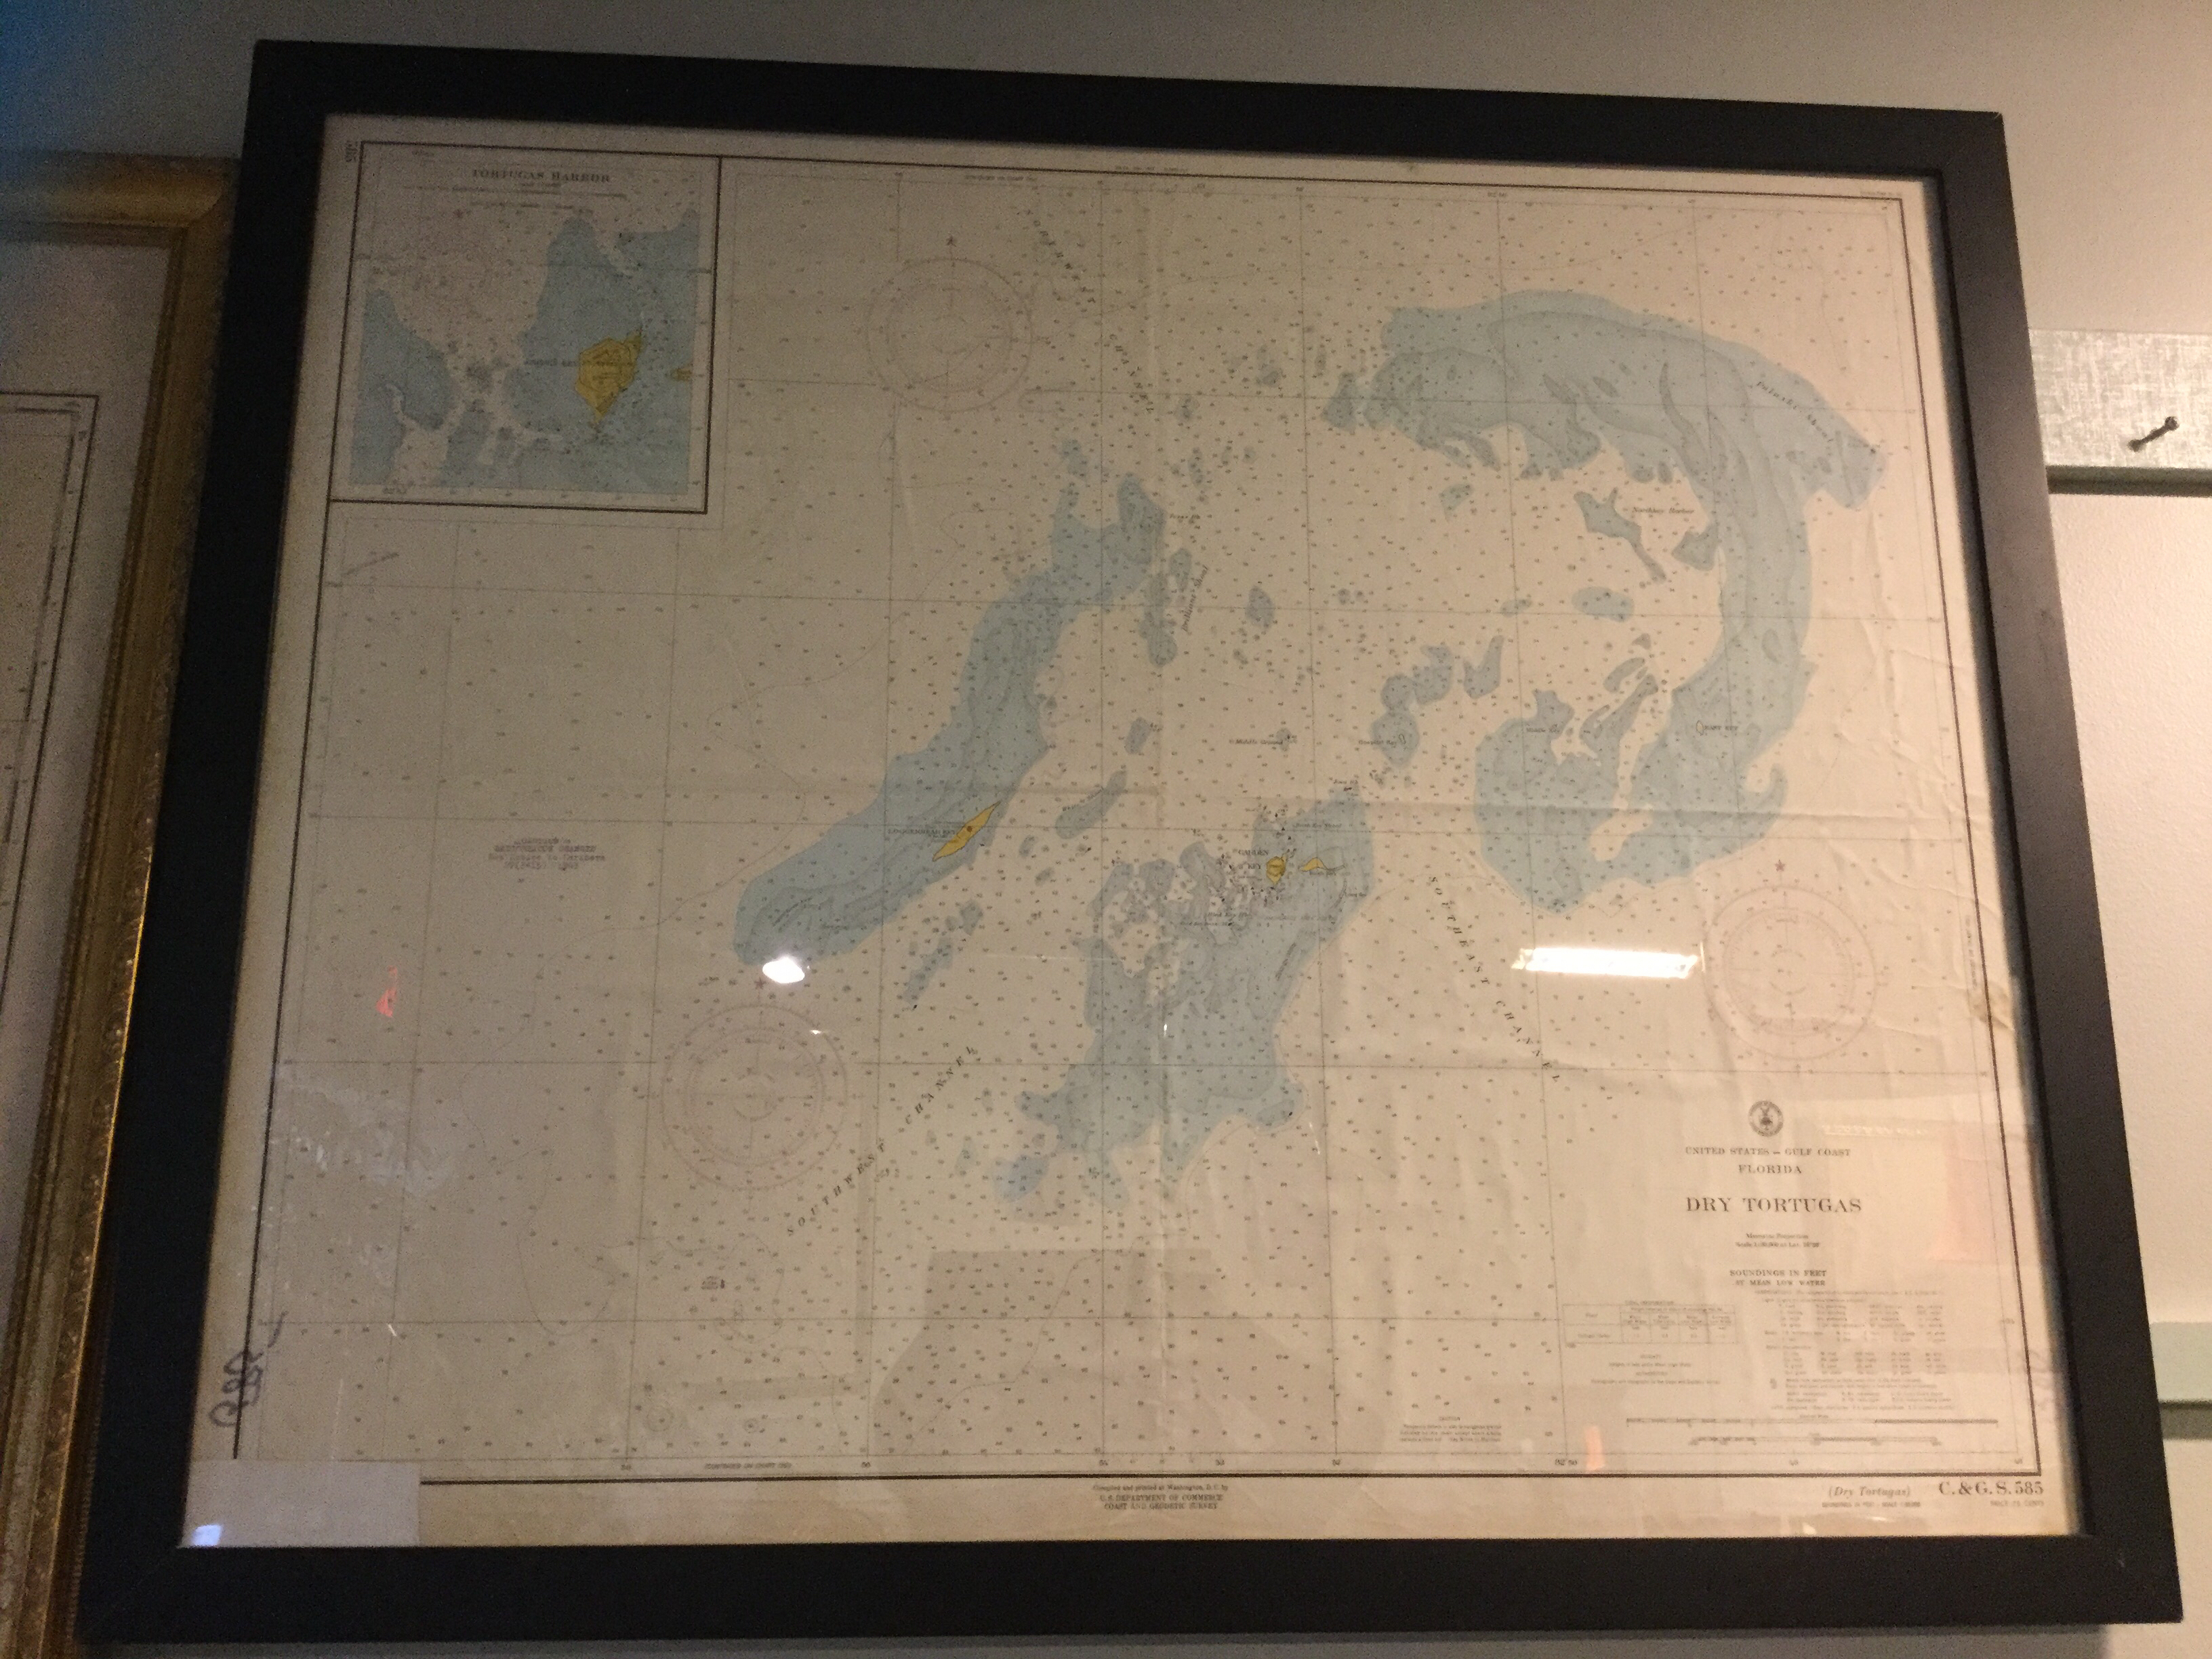 Black Framed Map Of Dry Tortugas Florida Gulf Coast | Consignment - Framed Map Of Florida